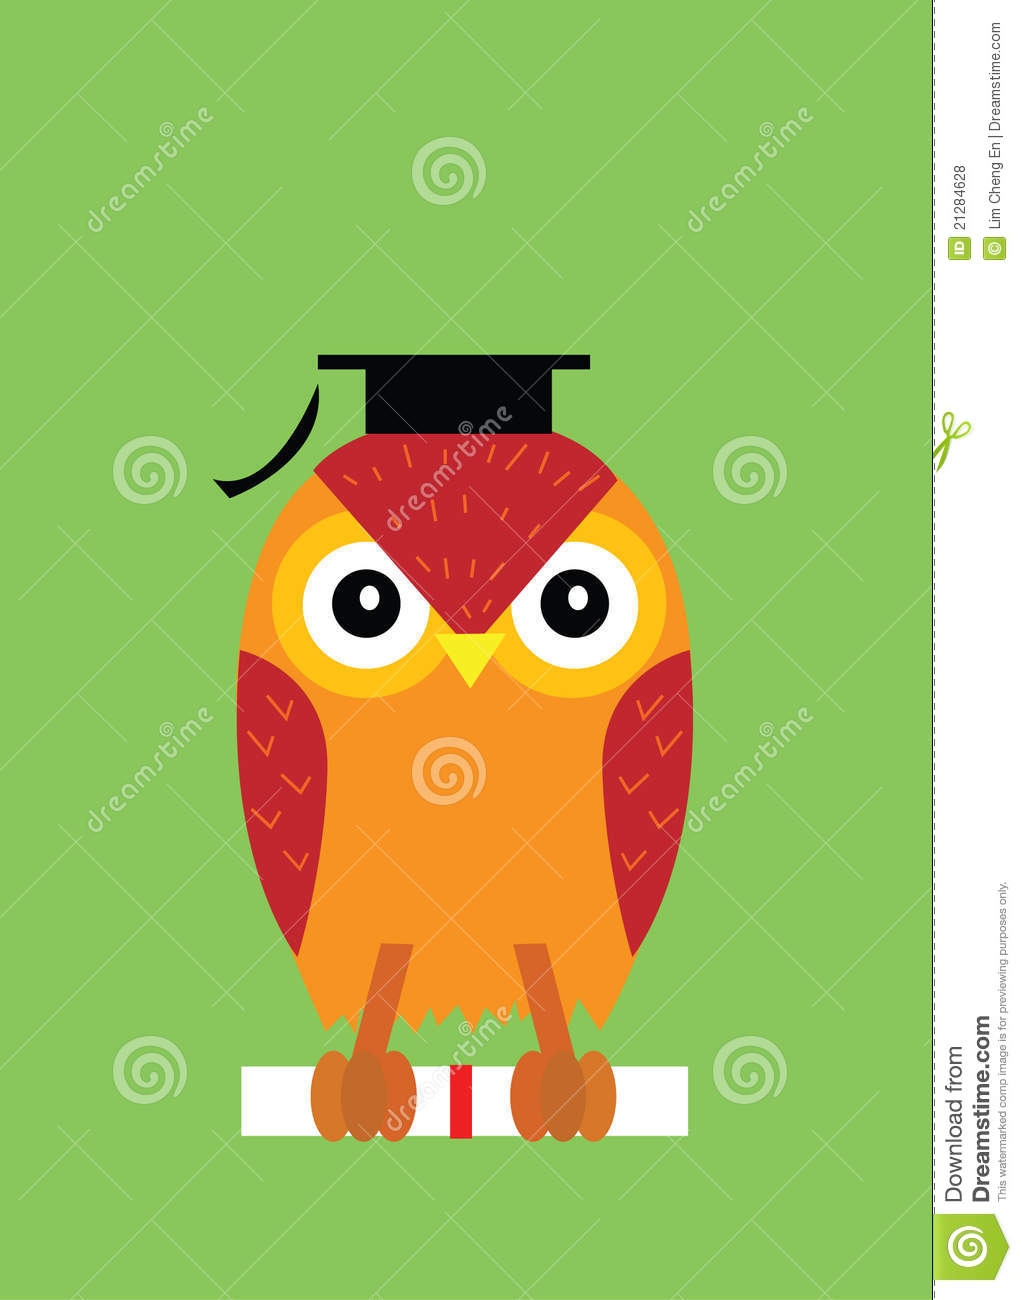 Graduation Owl Free Vector